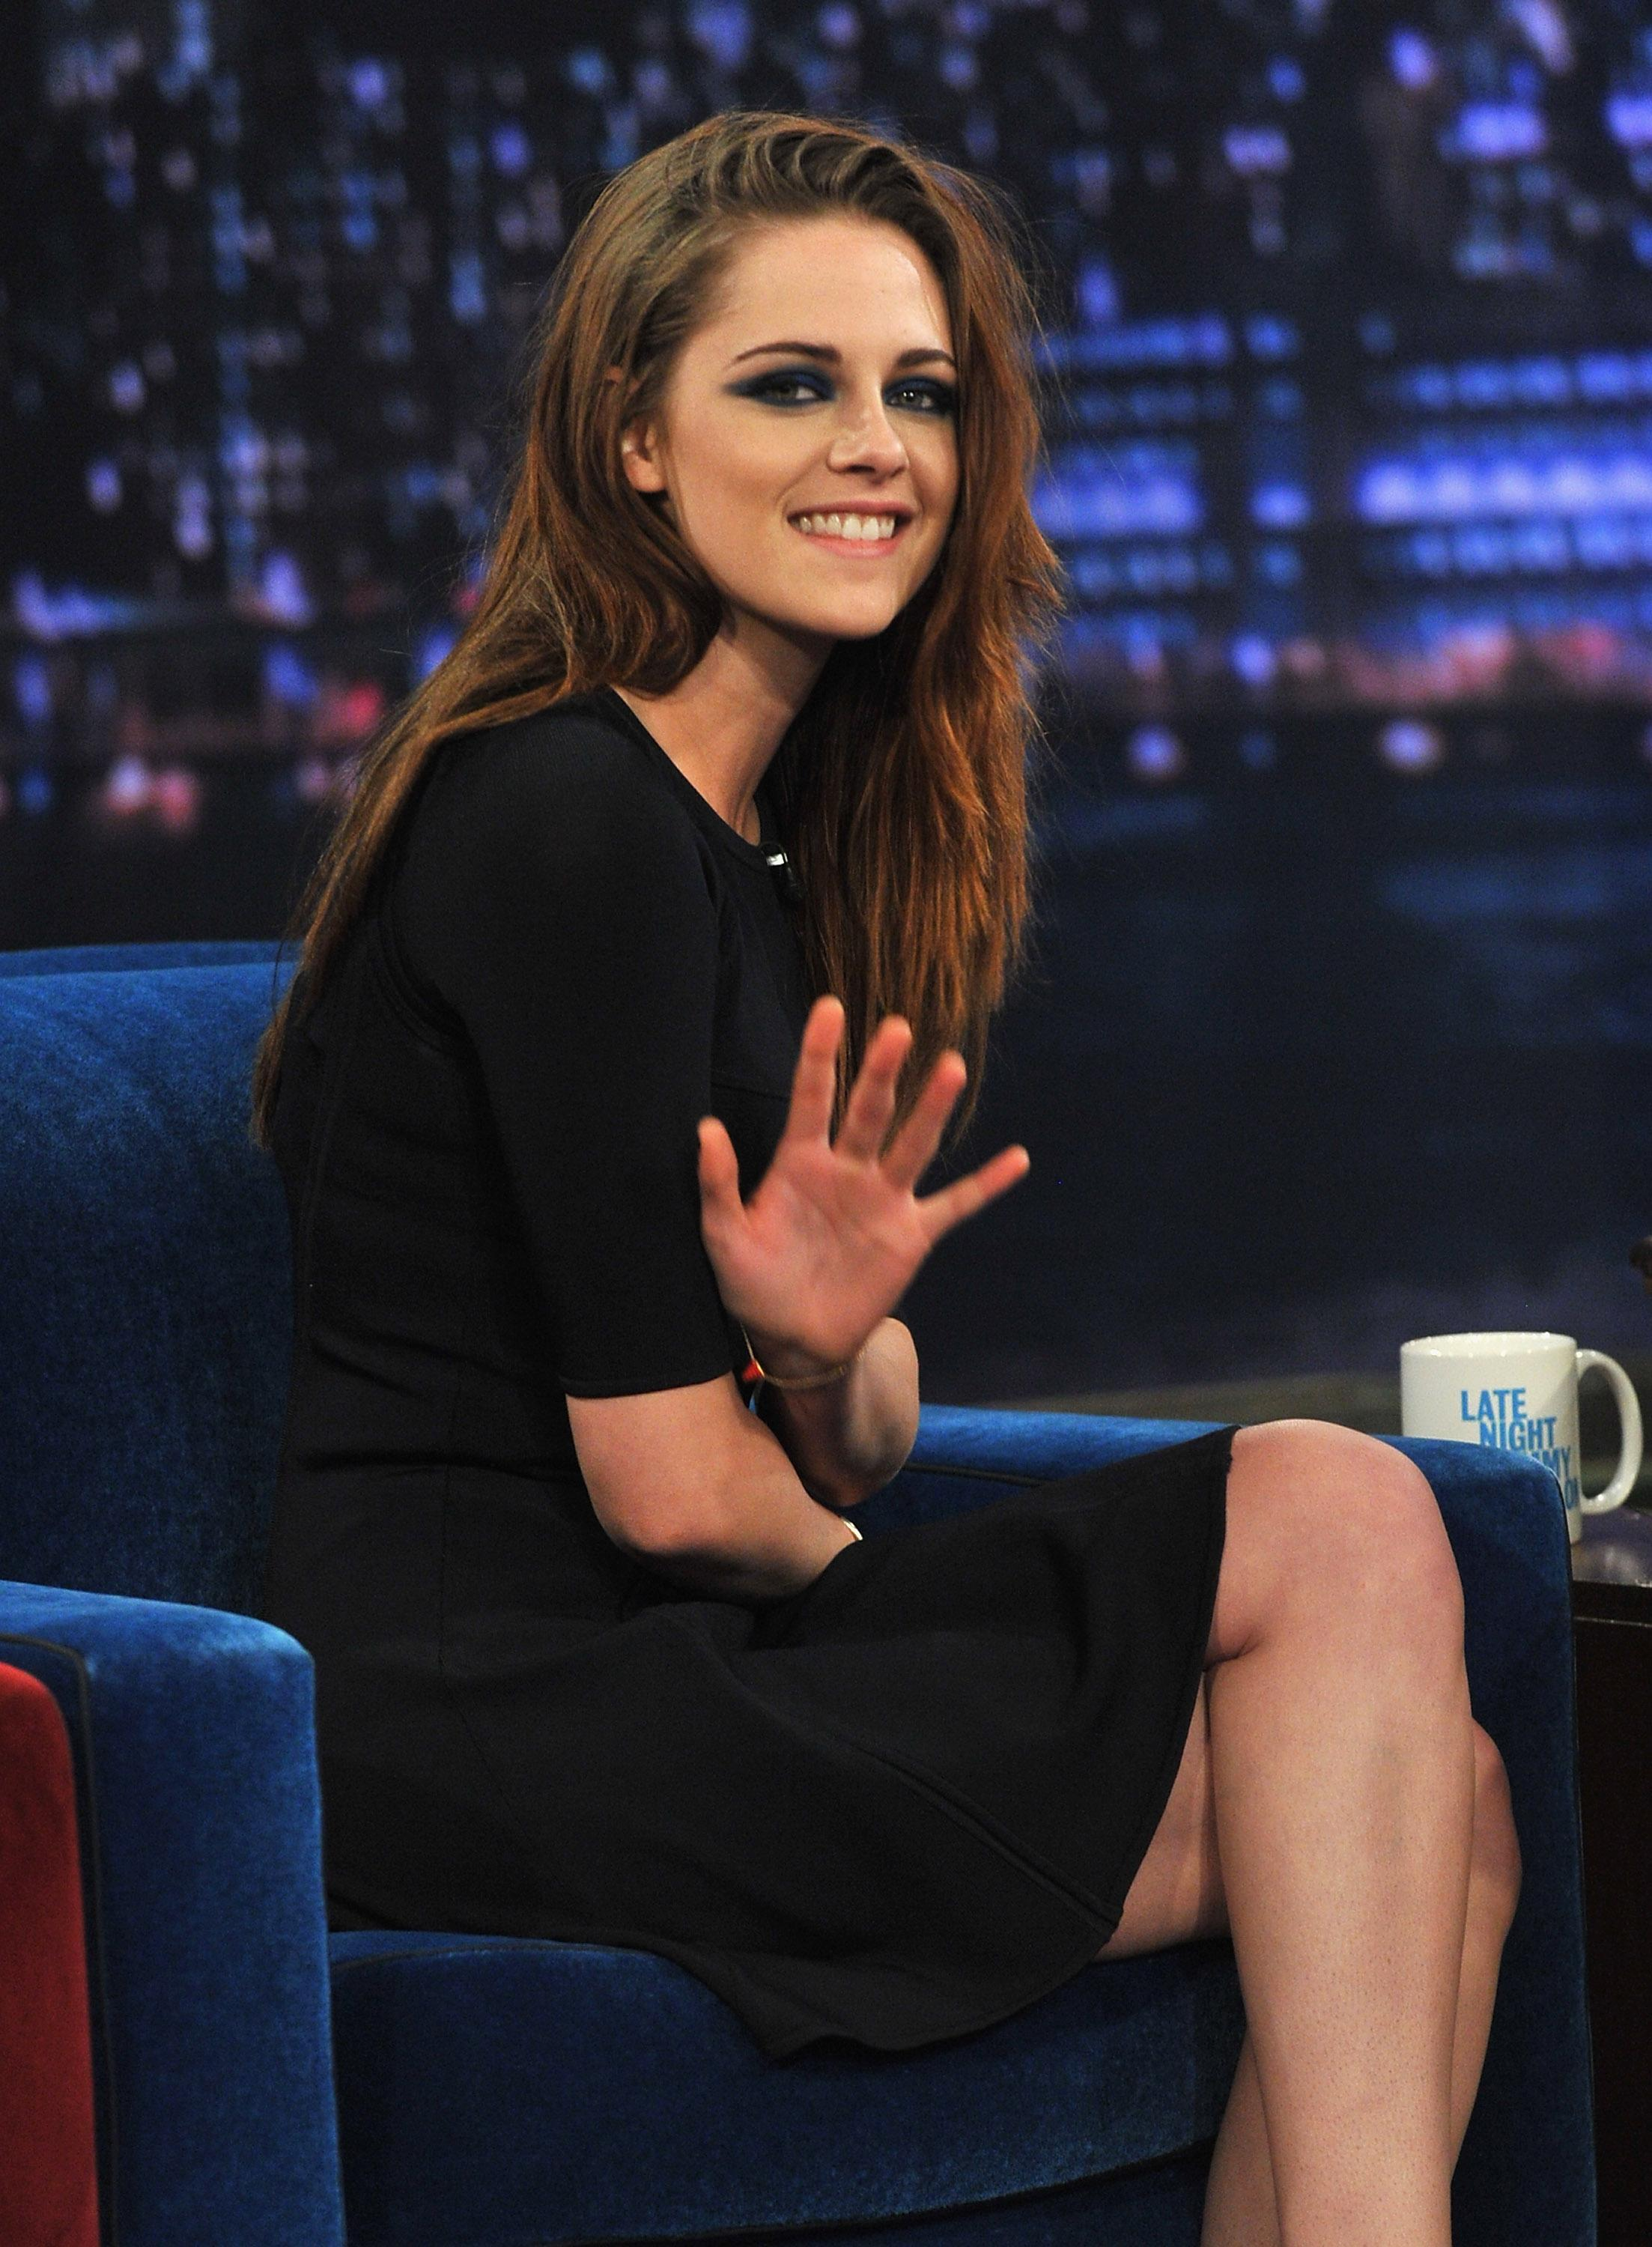 451593222_Kristen_Stewart_Late_Night_with_Jimmy_Fallon6_122_494lo.jpg